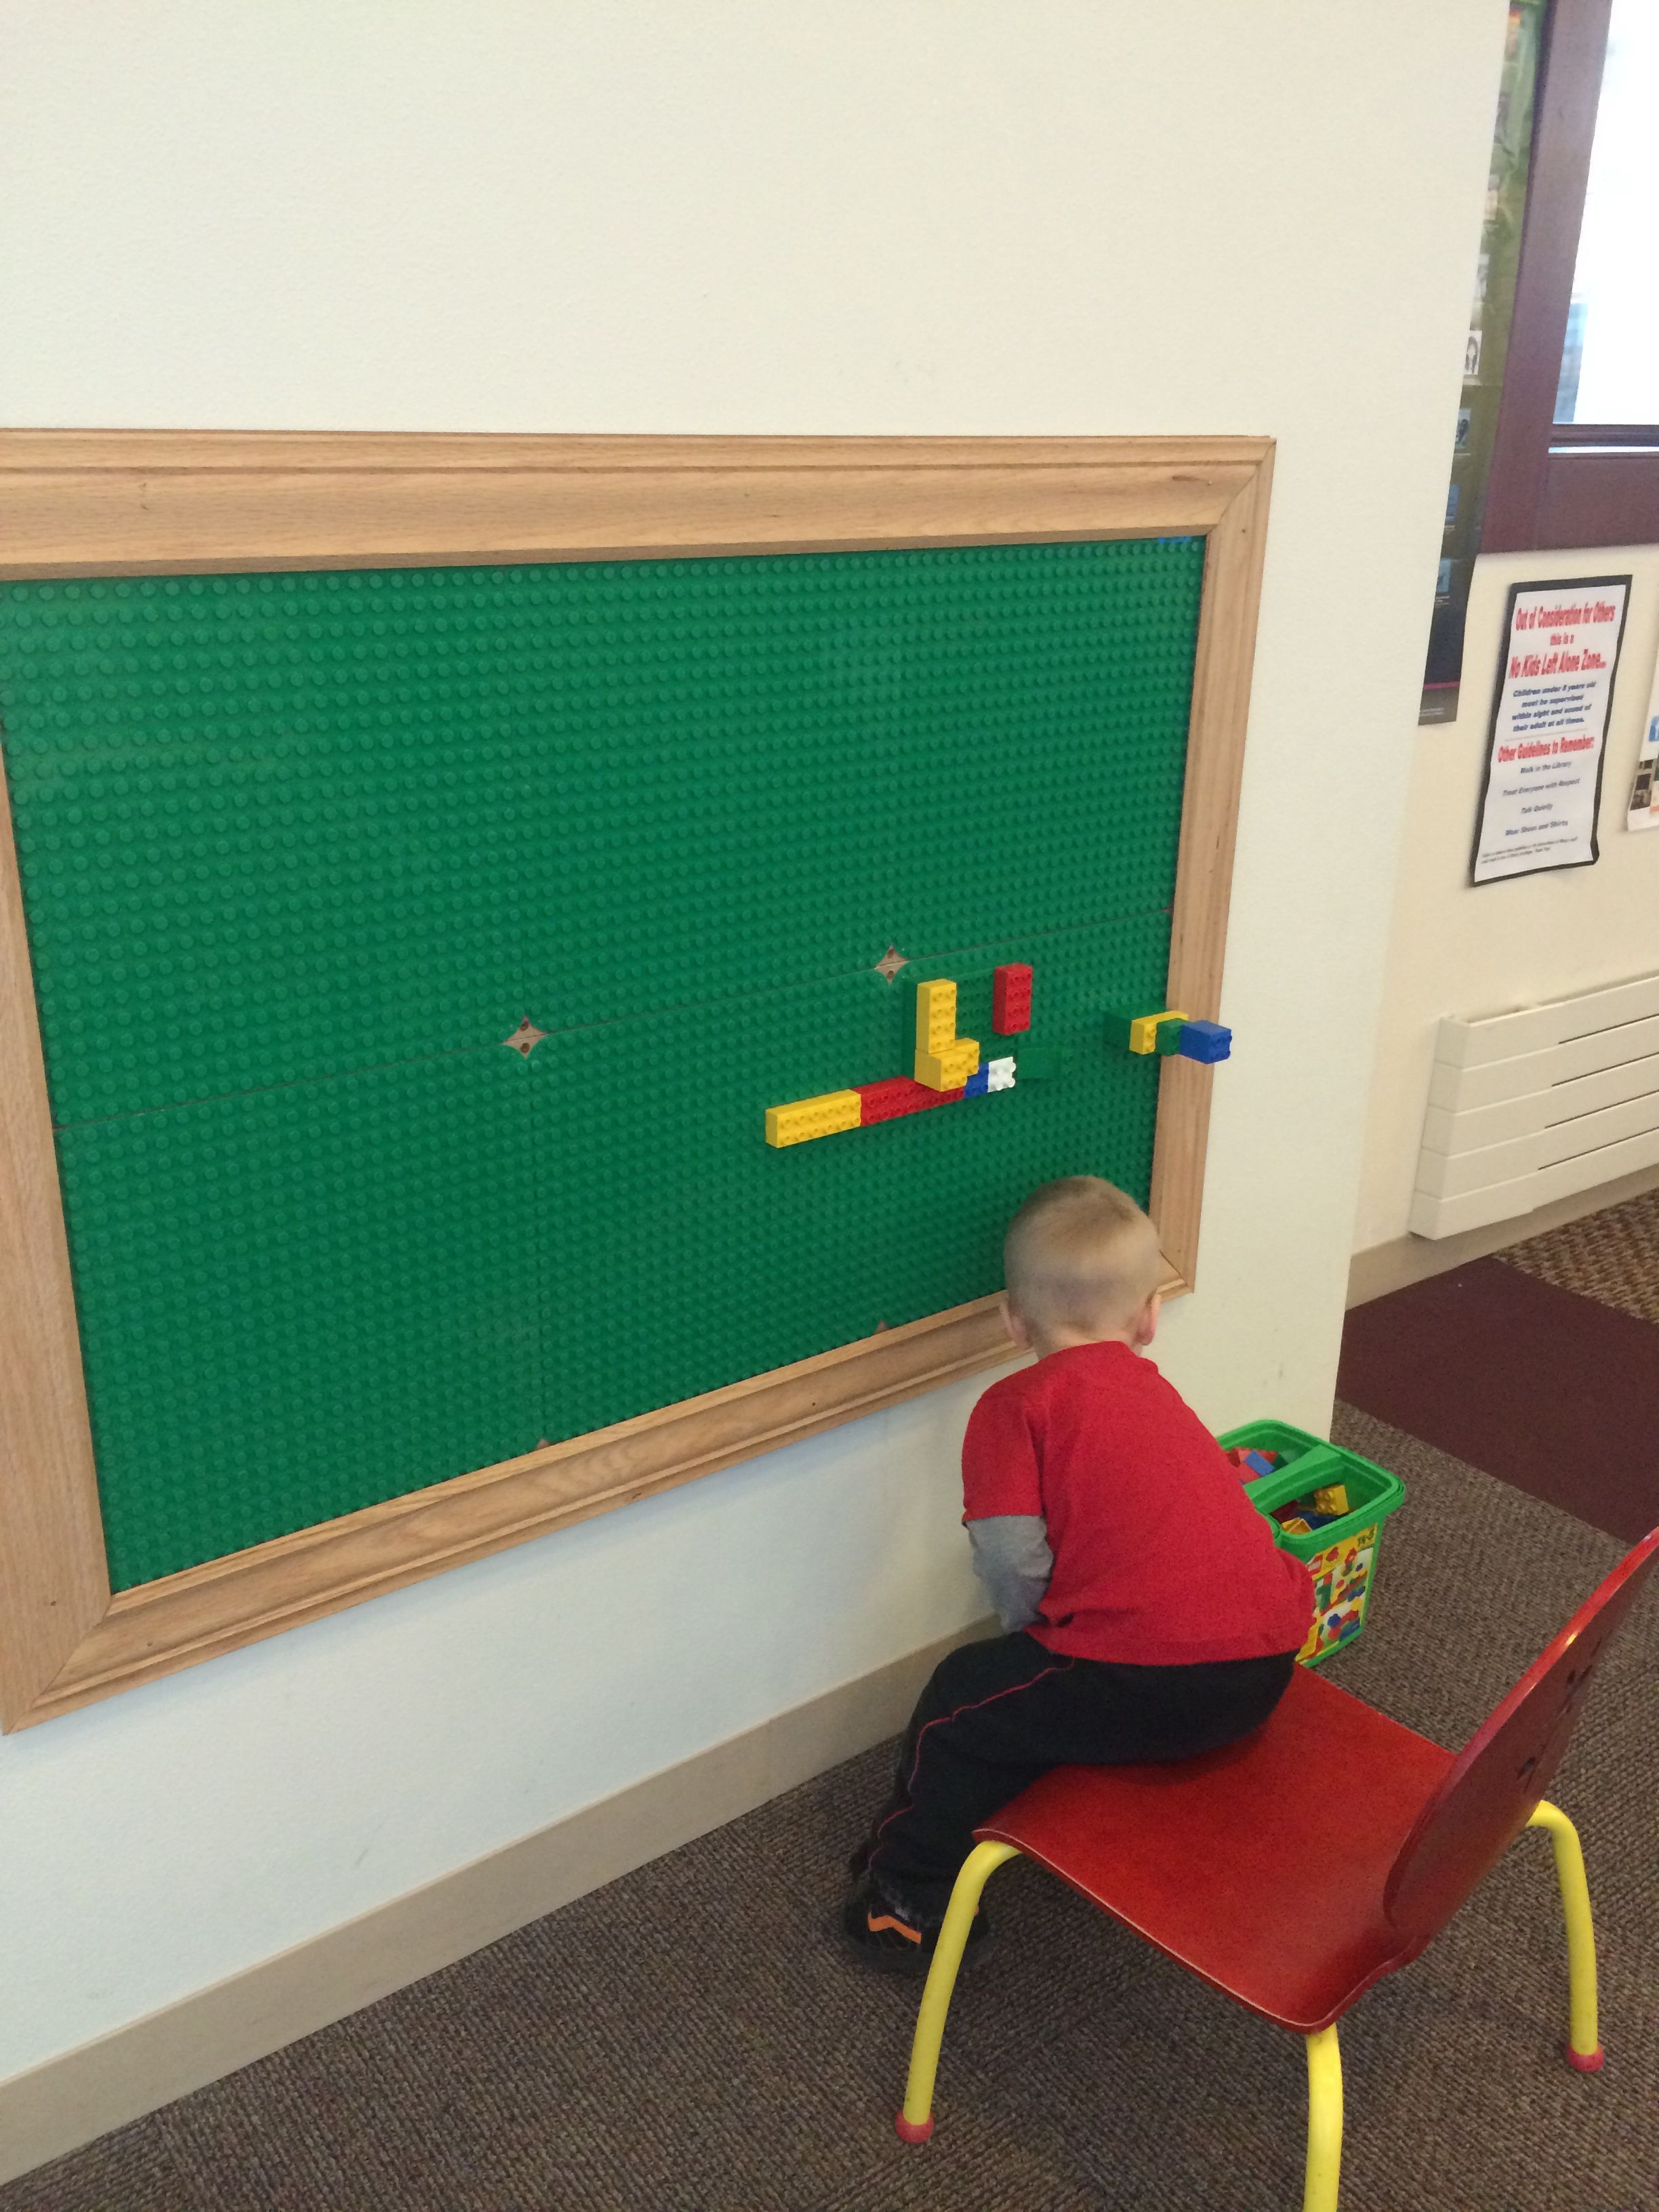 Room 2 Build Bedroom Kids Lego: Little Boys Room Project Idea. Lego Boards On The Wall